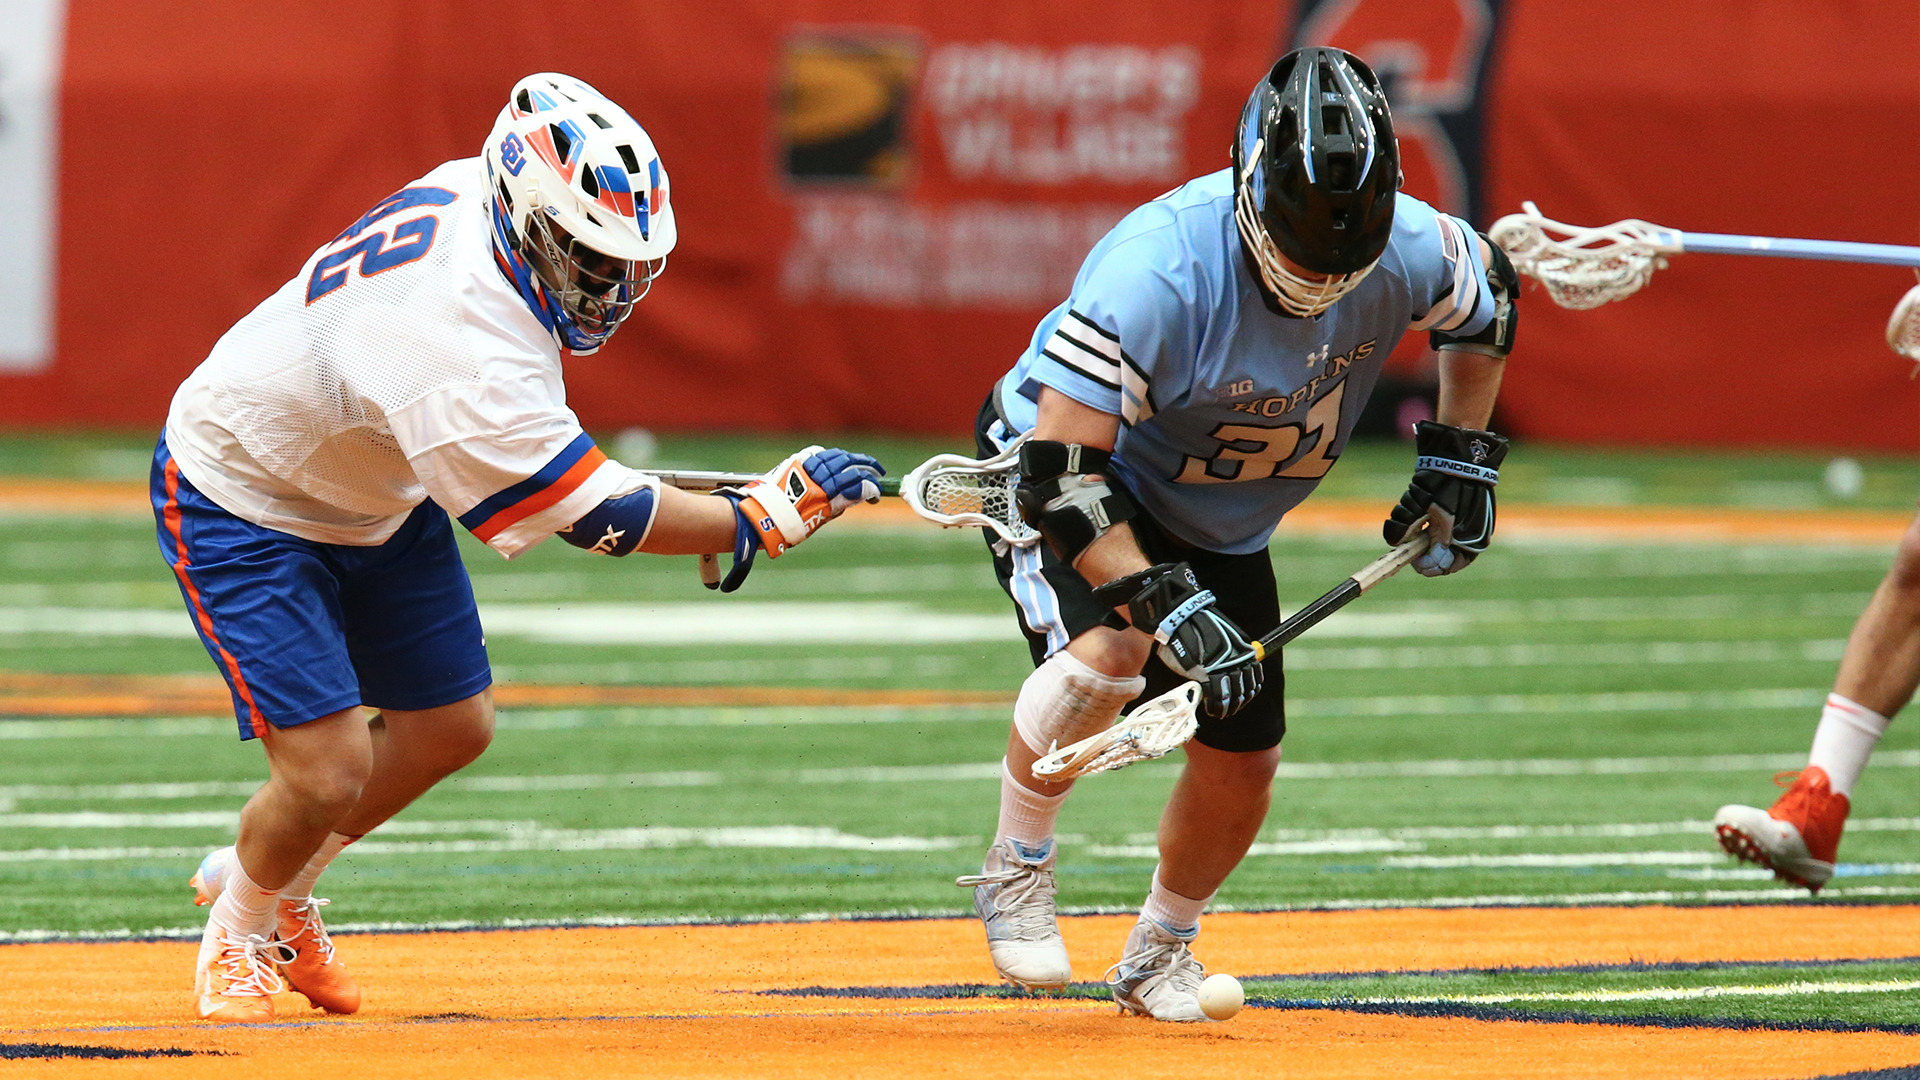 hopkins powers past syracuse, 18-7, at the carrier dome - johns